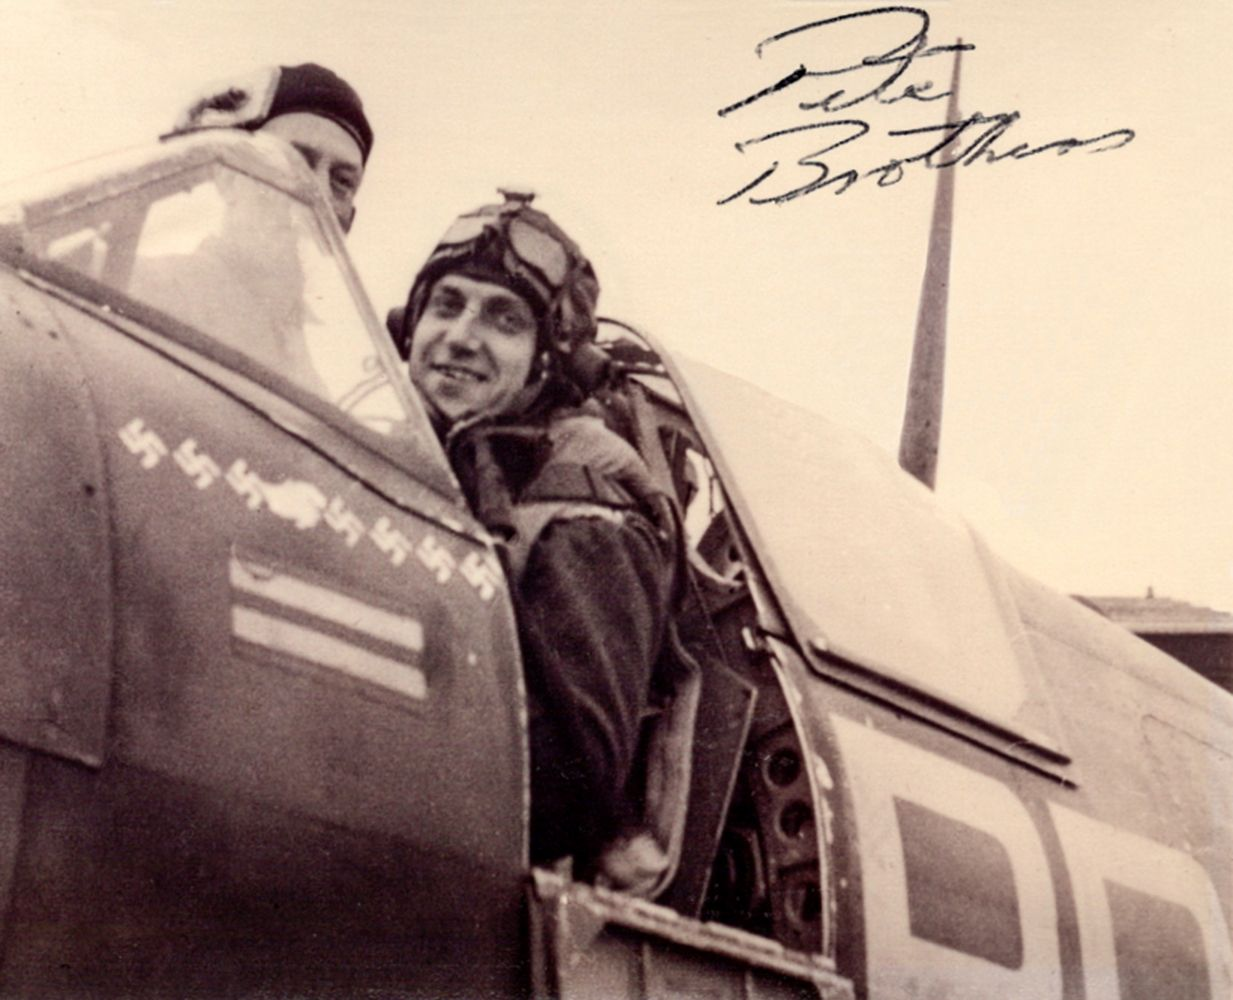 * Battle of Britain Medal Group - Air Commodore Peter Brothers - Image 13 of 14